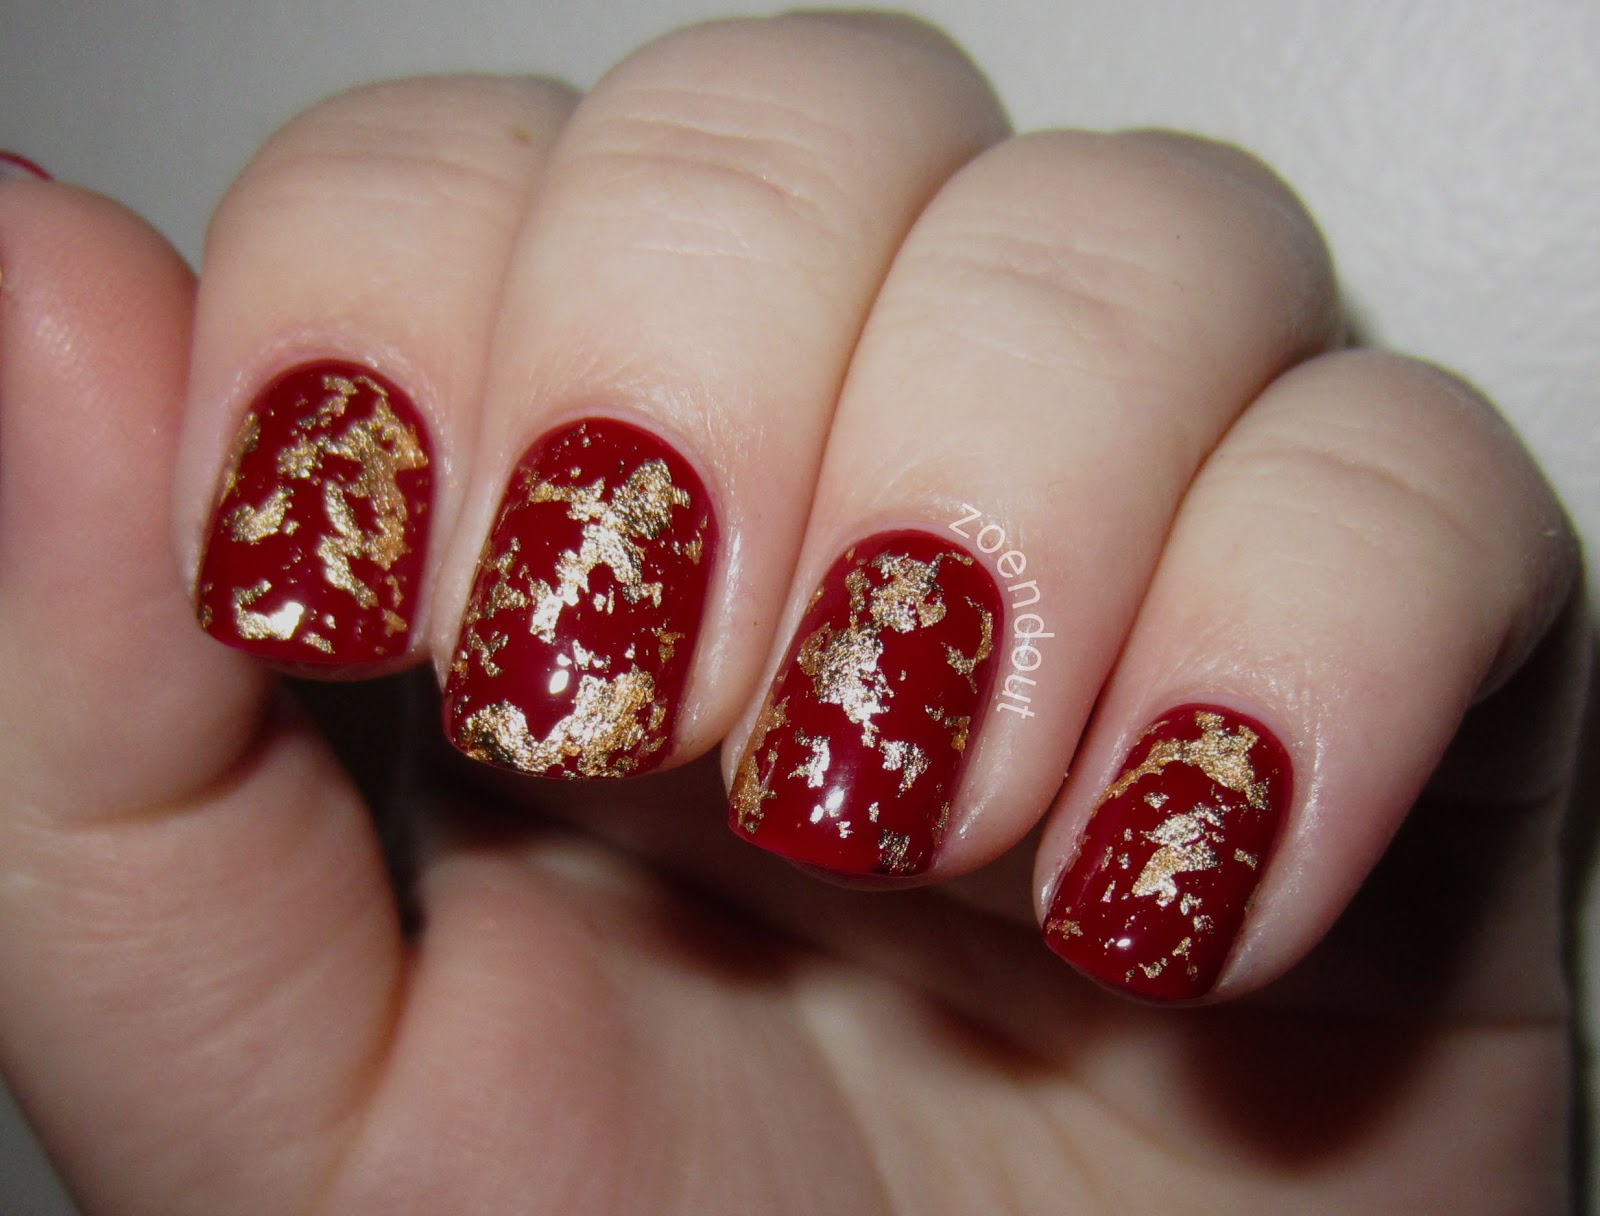 Zoendout Nails: My Christmas Nails!